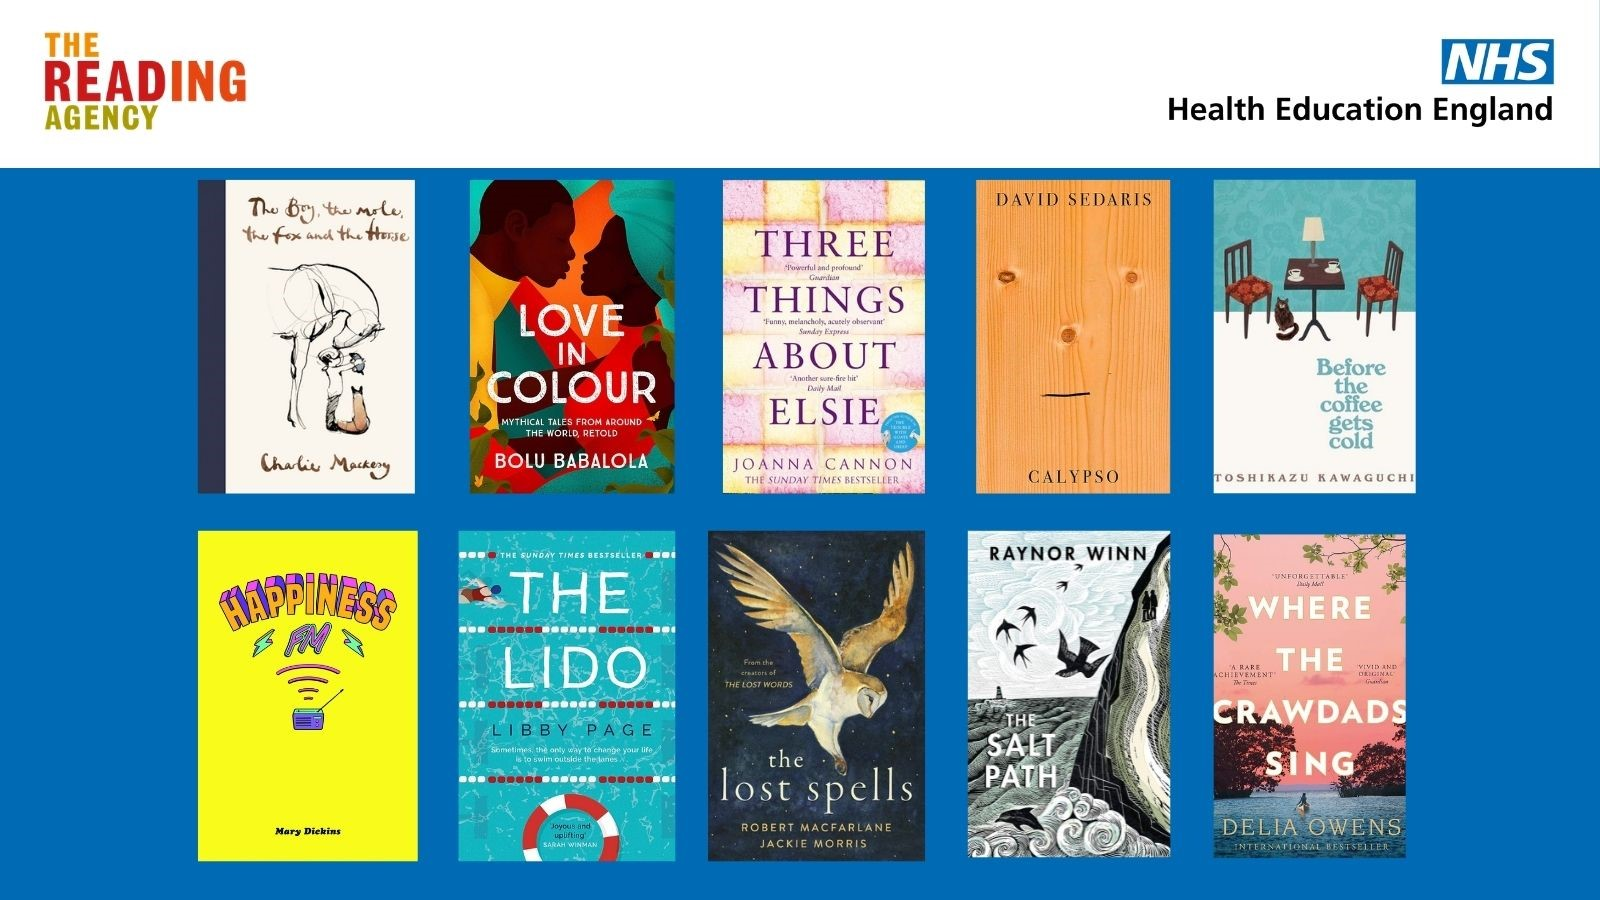 This image shows examples of books from Reading Well: The Uplifting Collection